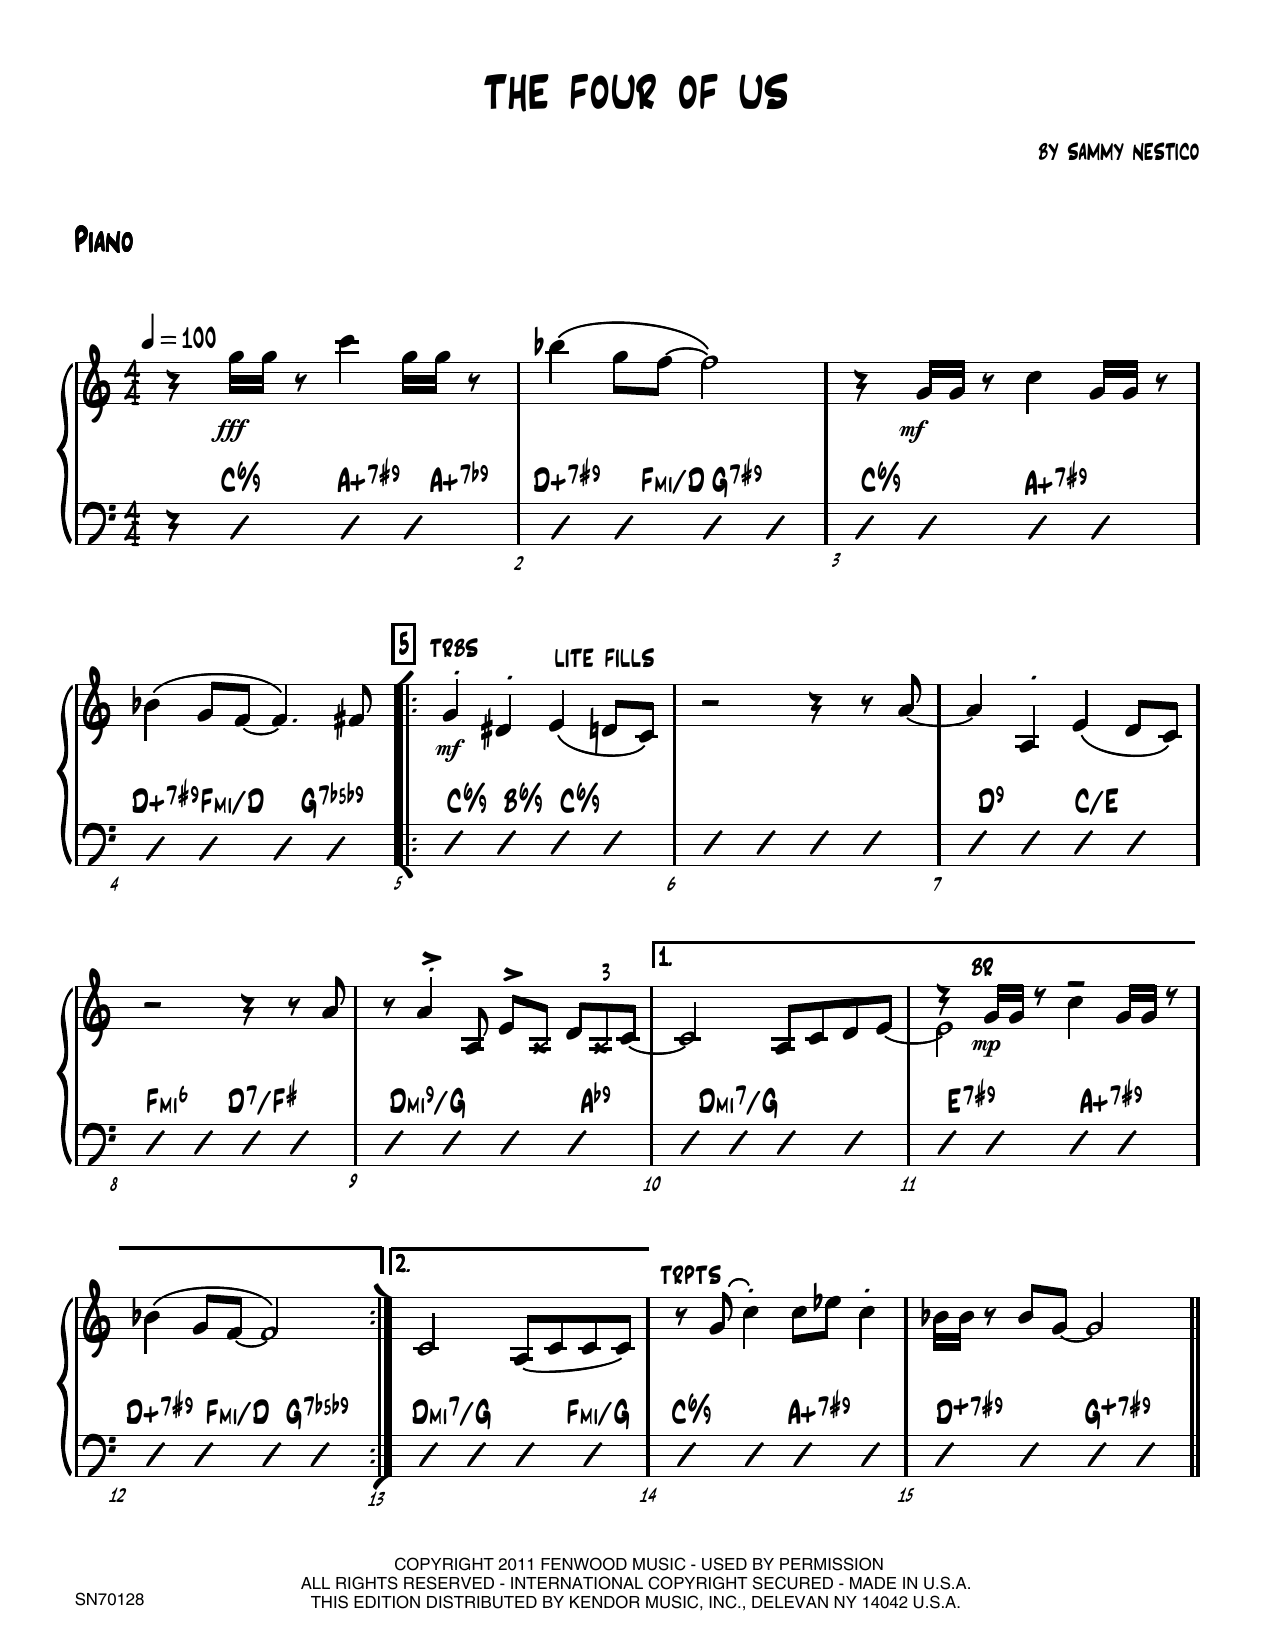 The Four Of Us - Piano Sheet Music